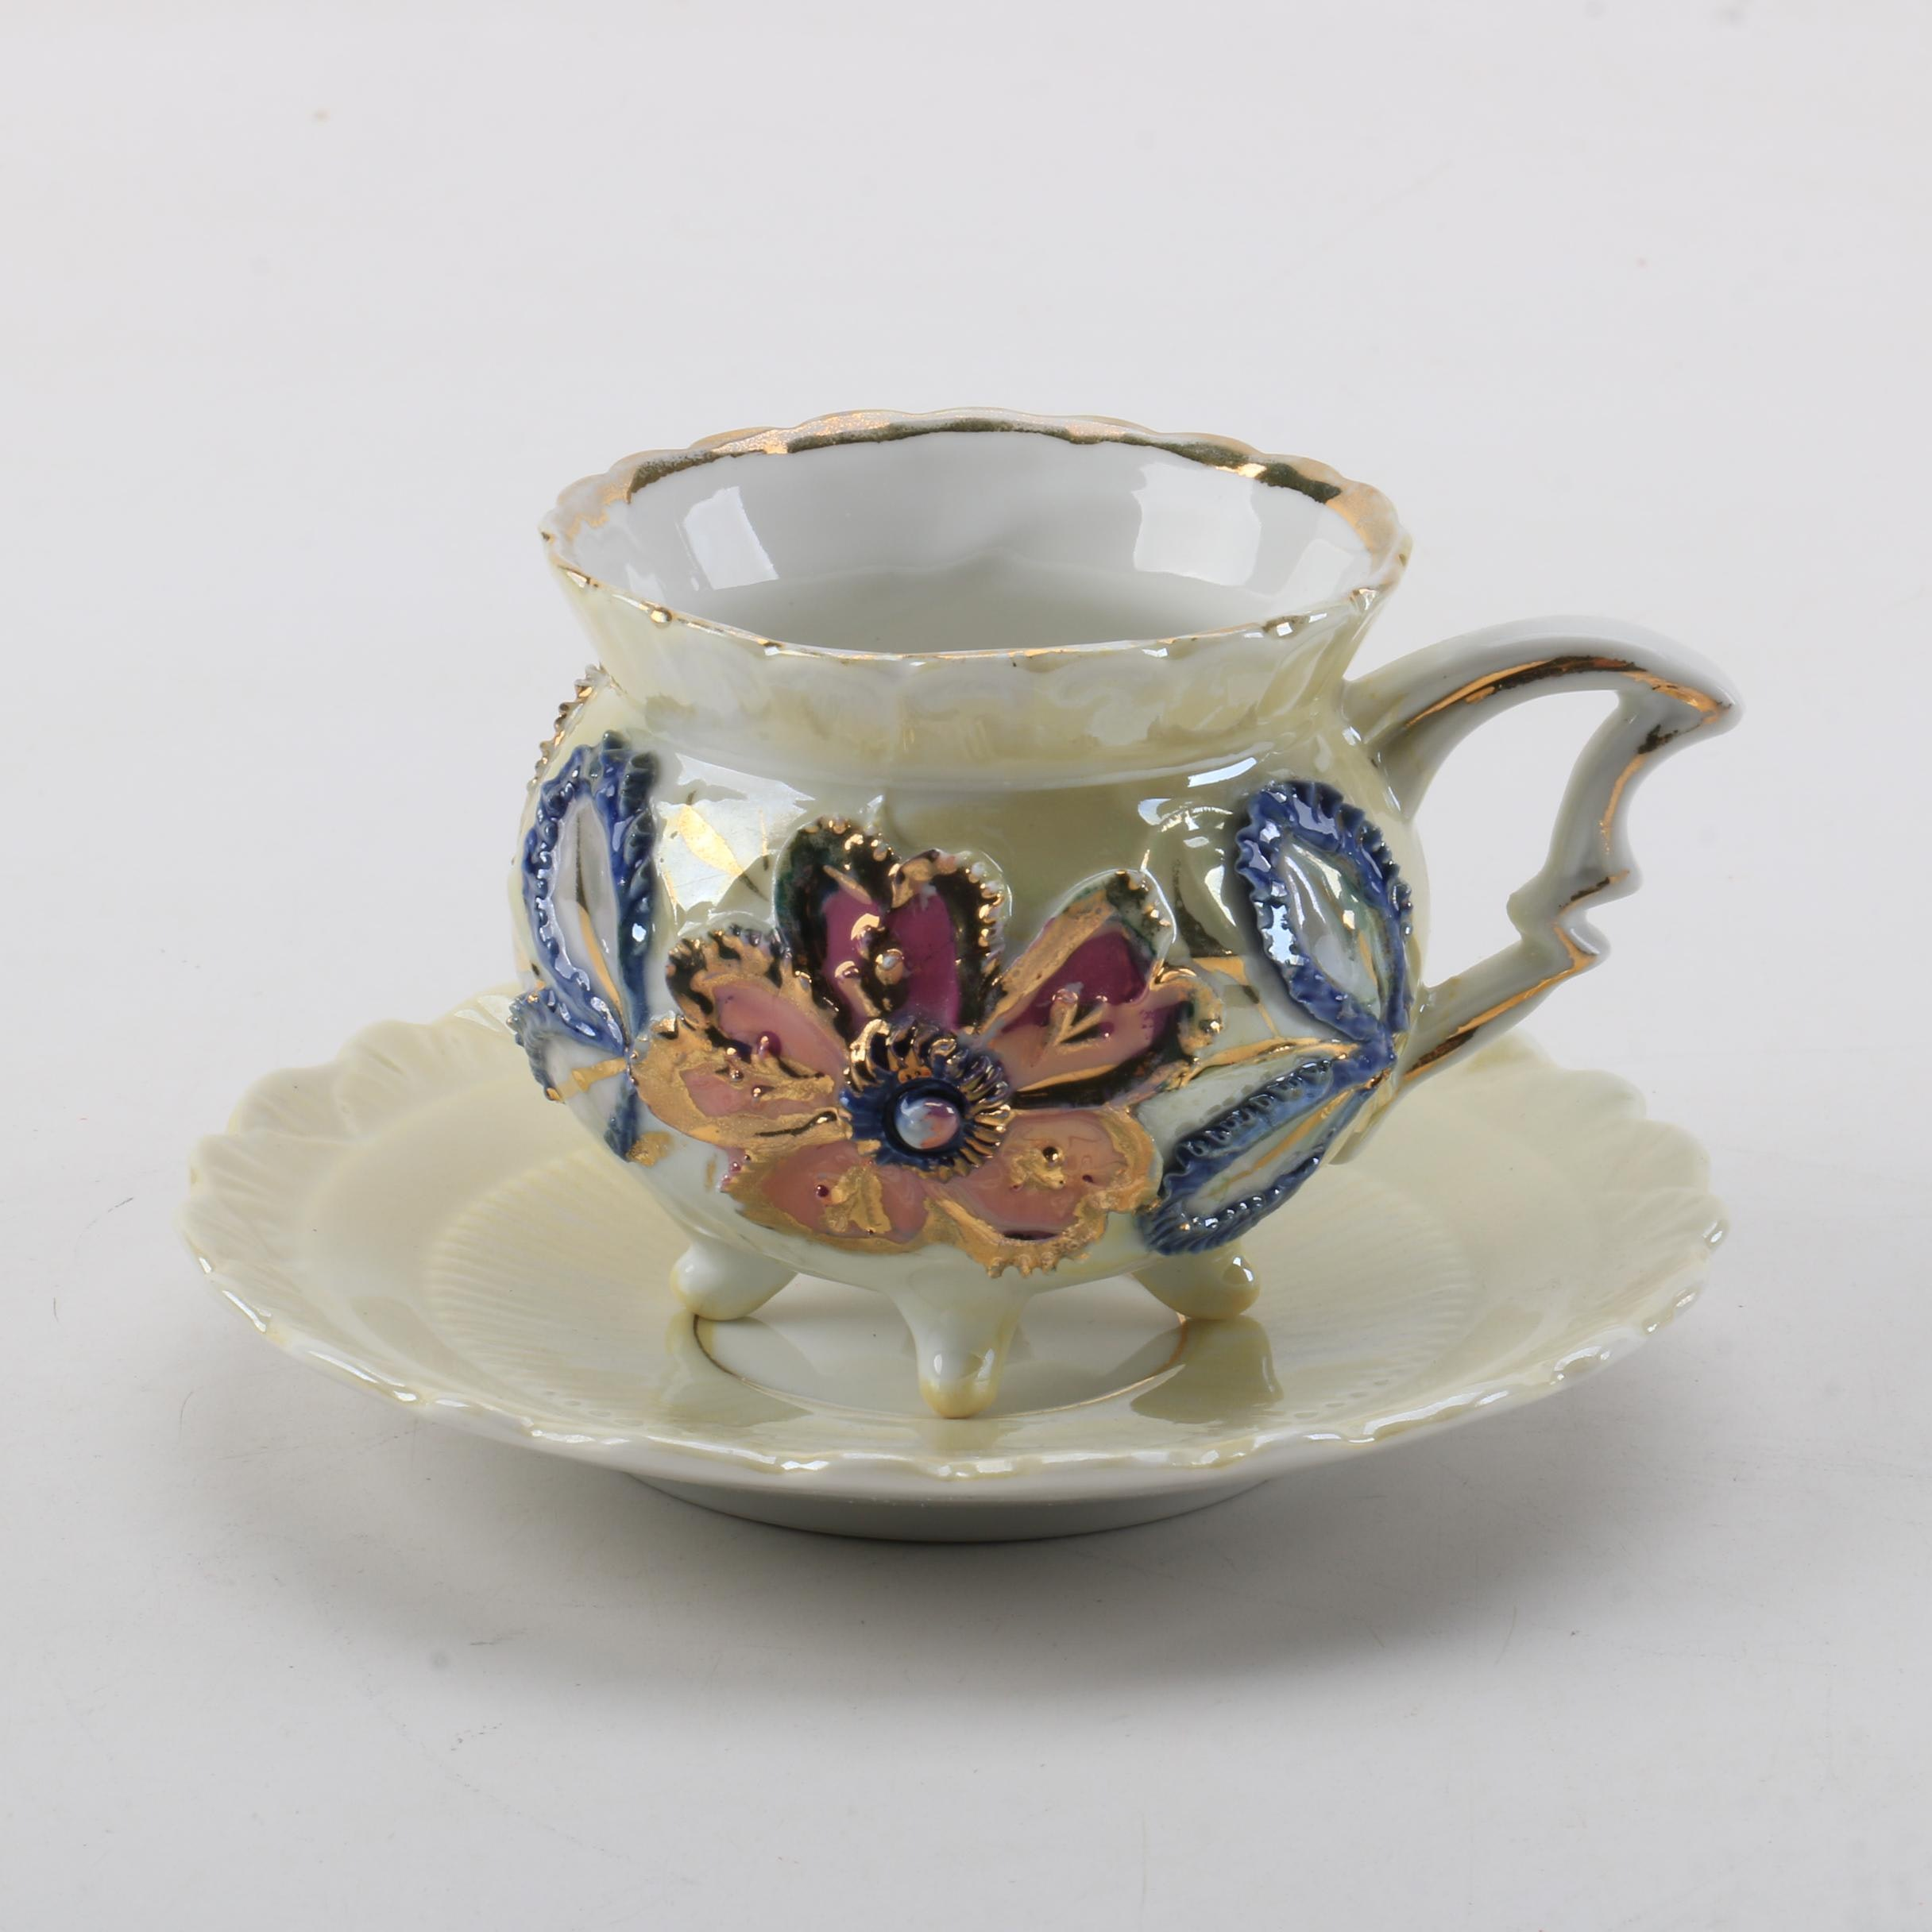 Early 20th Century Lustrous Porcelain Teacup and Saucer